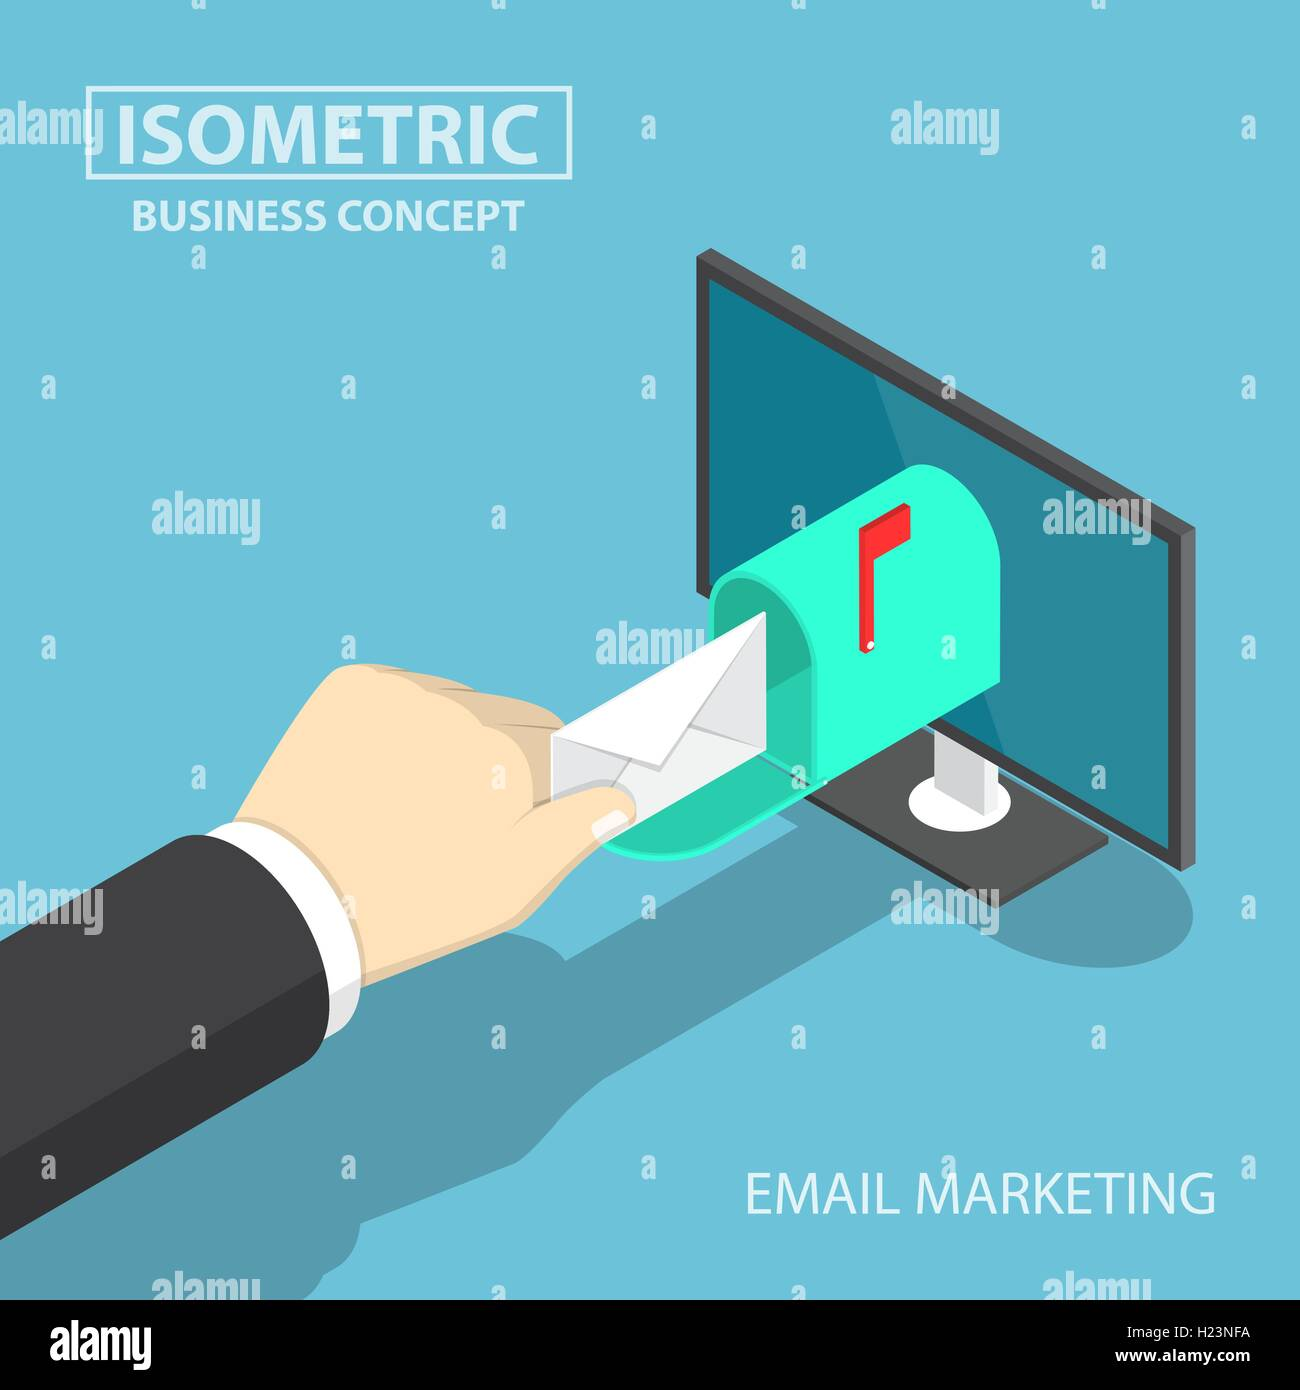 Isometric businessman hand getting mail delivery from monitor, email marketing business concept - Stock Image